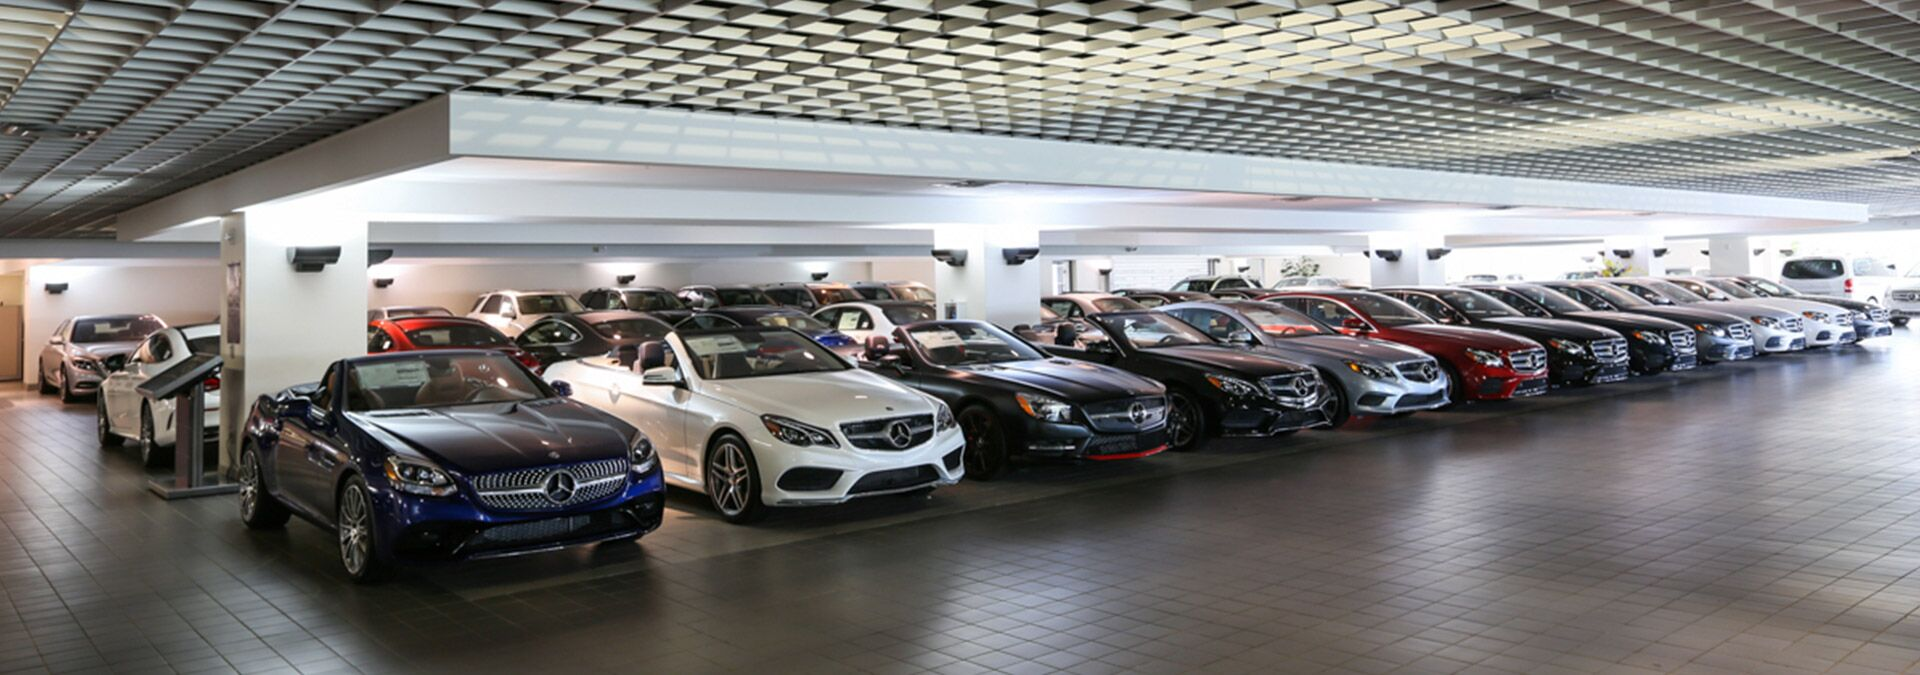 Mercedes Benz Of Miami >> Mercedes Benz Dealership Miami Fl Used Cars Bill Ussery Motors